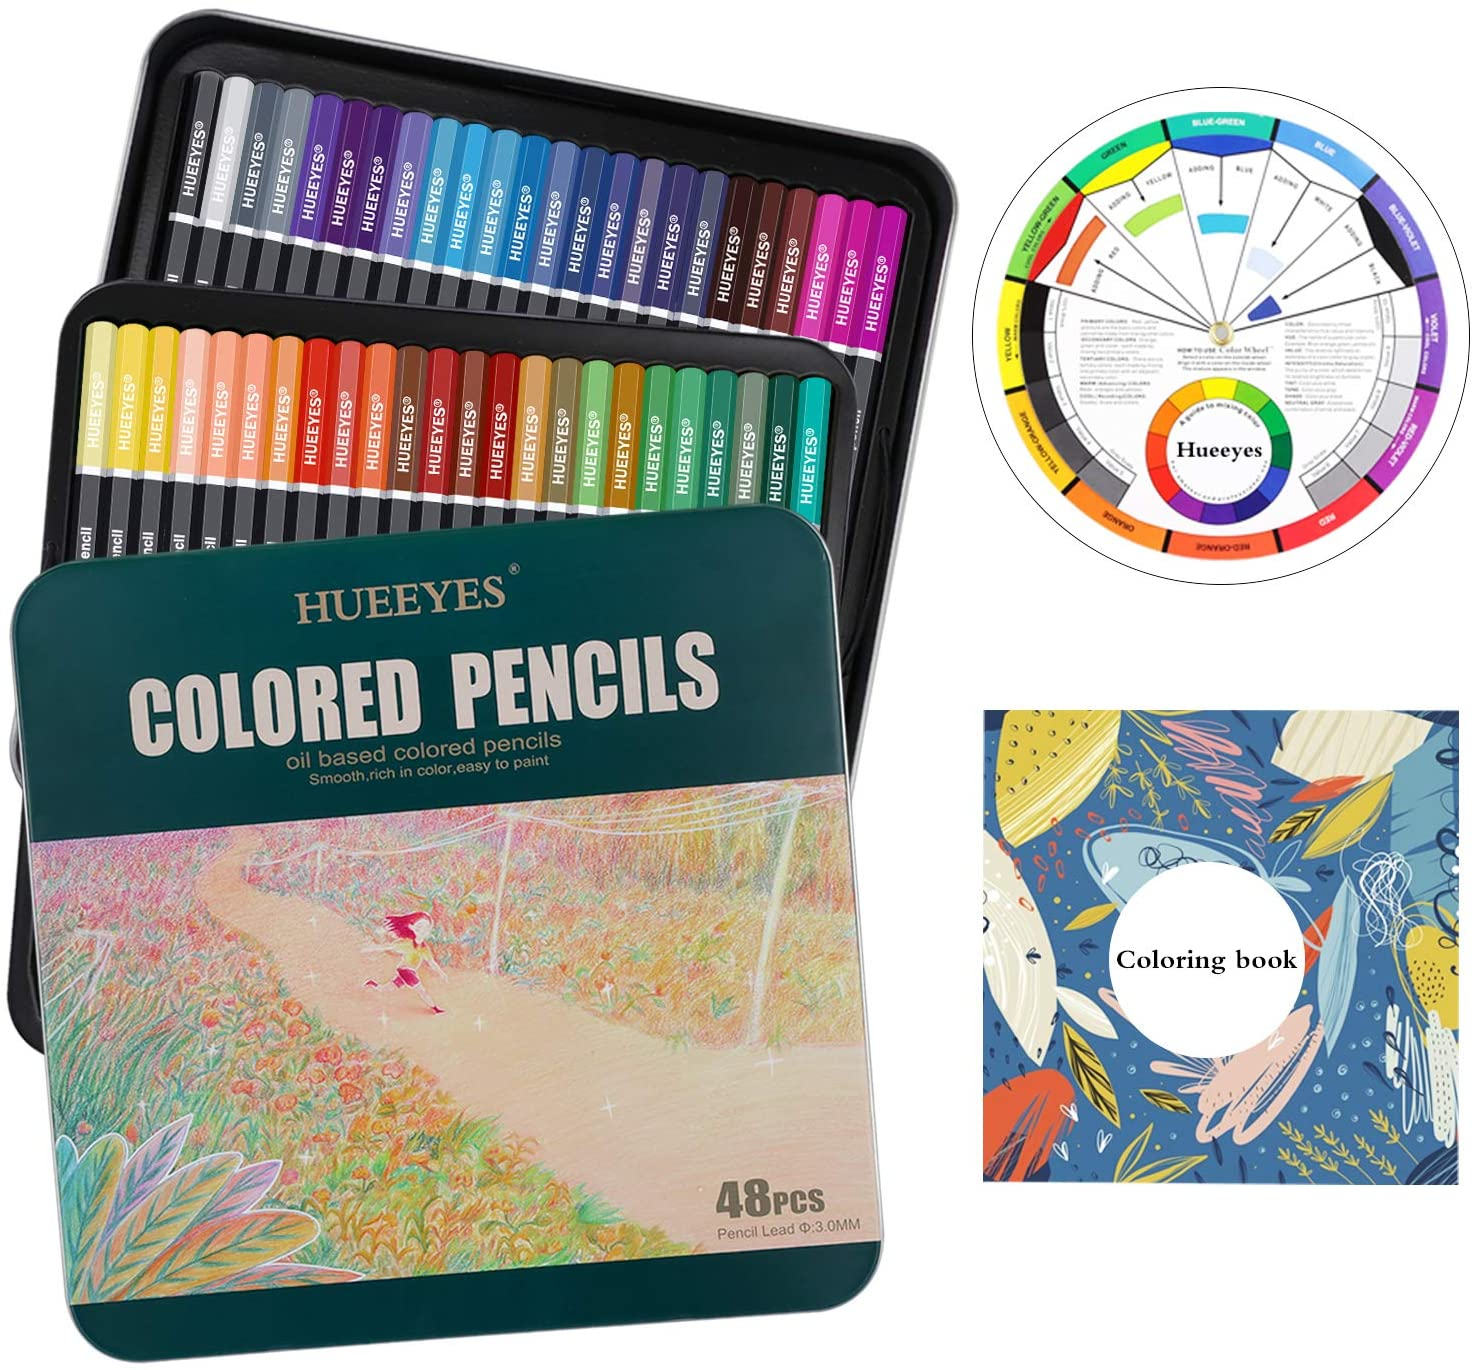 48 Oil Based colored pencils for adults with Color Wheel, HUEEYES - Ideal for Coloring and Drawing, Vibrant Color Professional Art School Supplies for Kids, Holiday Gifts for beginner Drawing